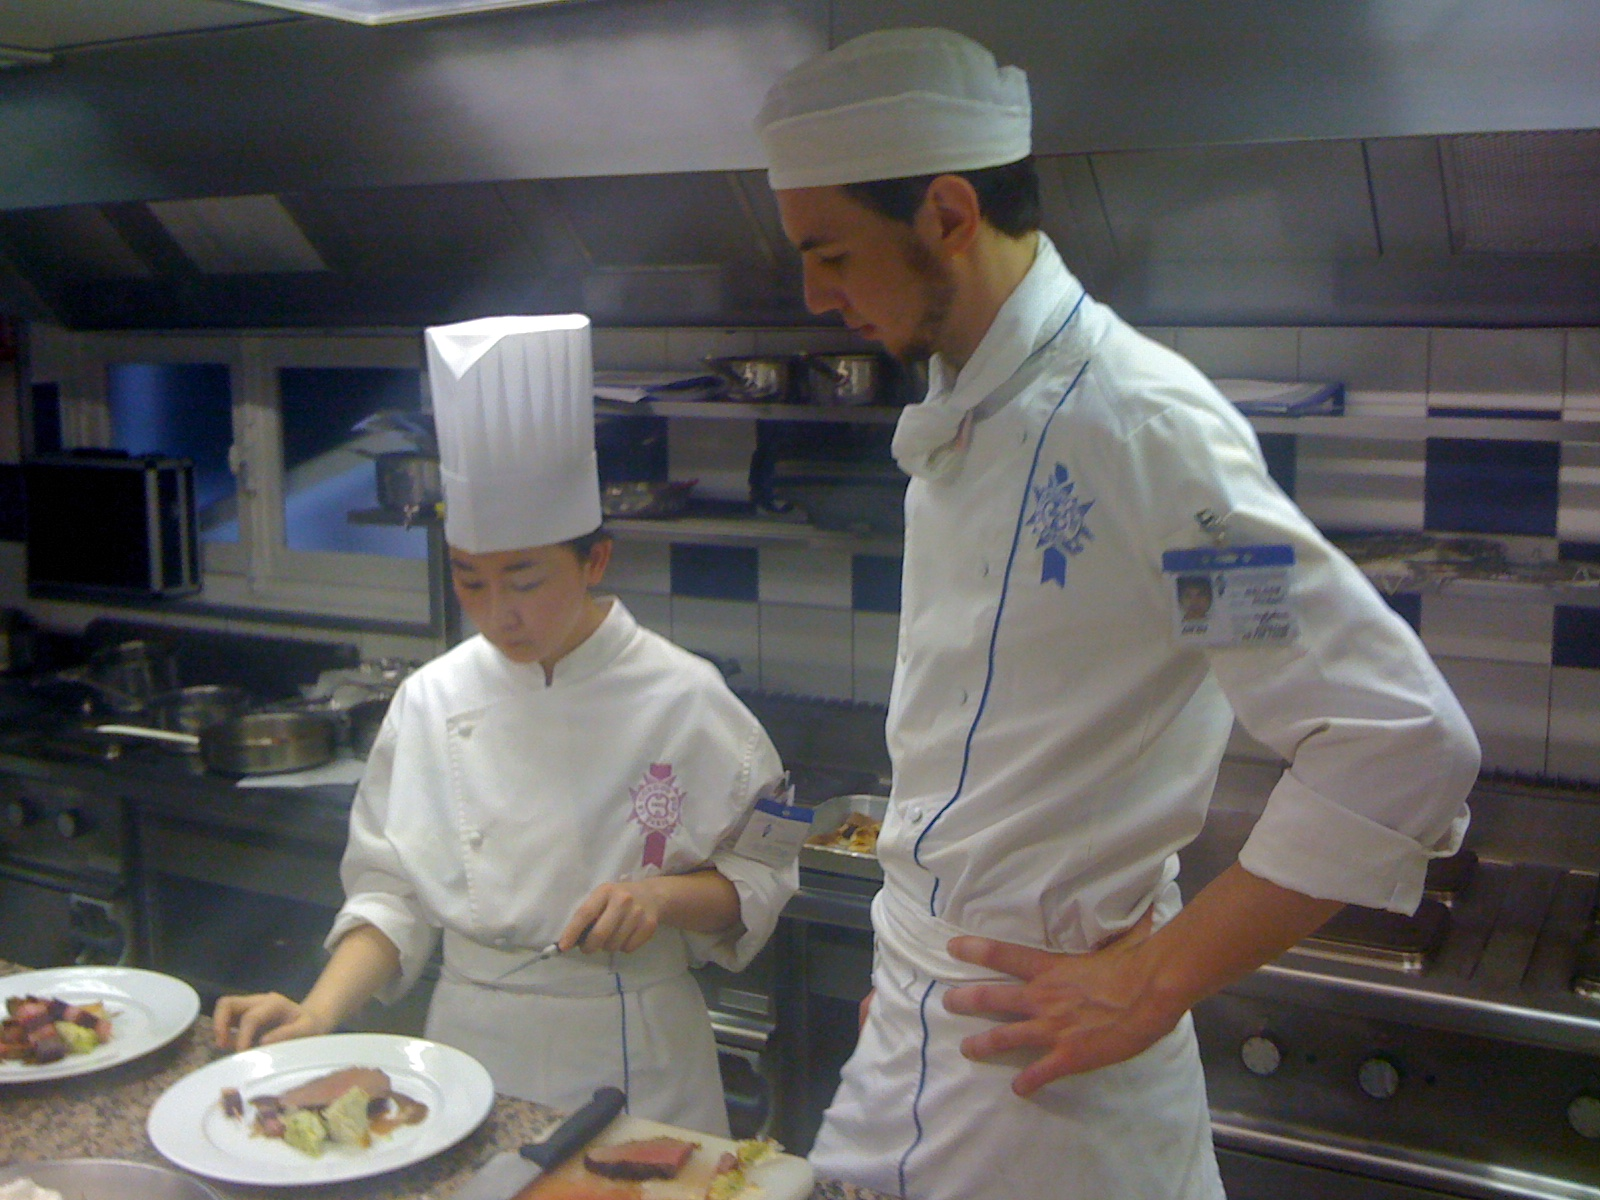 Sjoerd at le cordon bleu paris superior cuisine 2010 la petite chef not bad at all - Recherche chef de cuisine paris ...